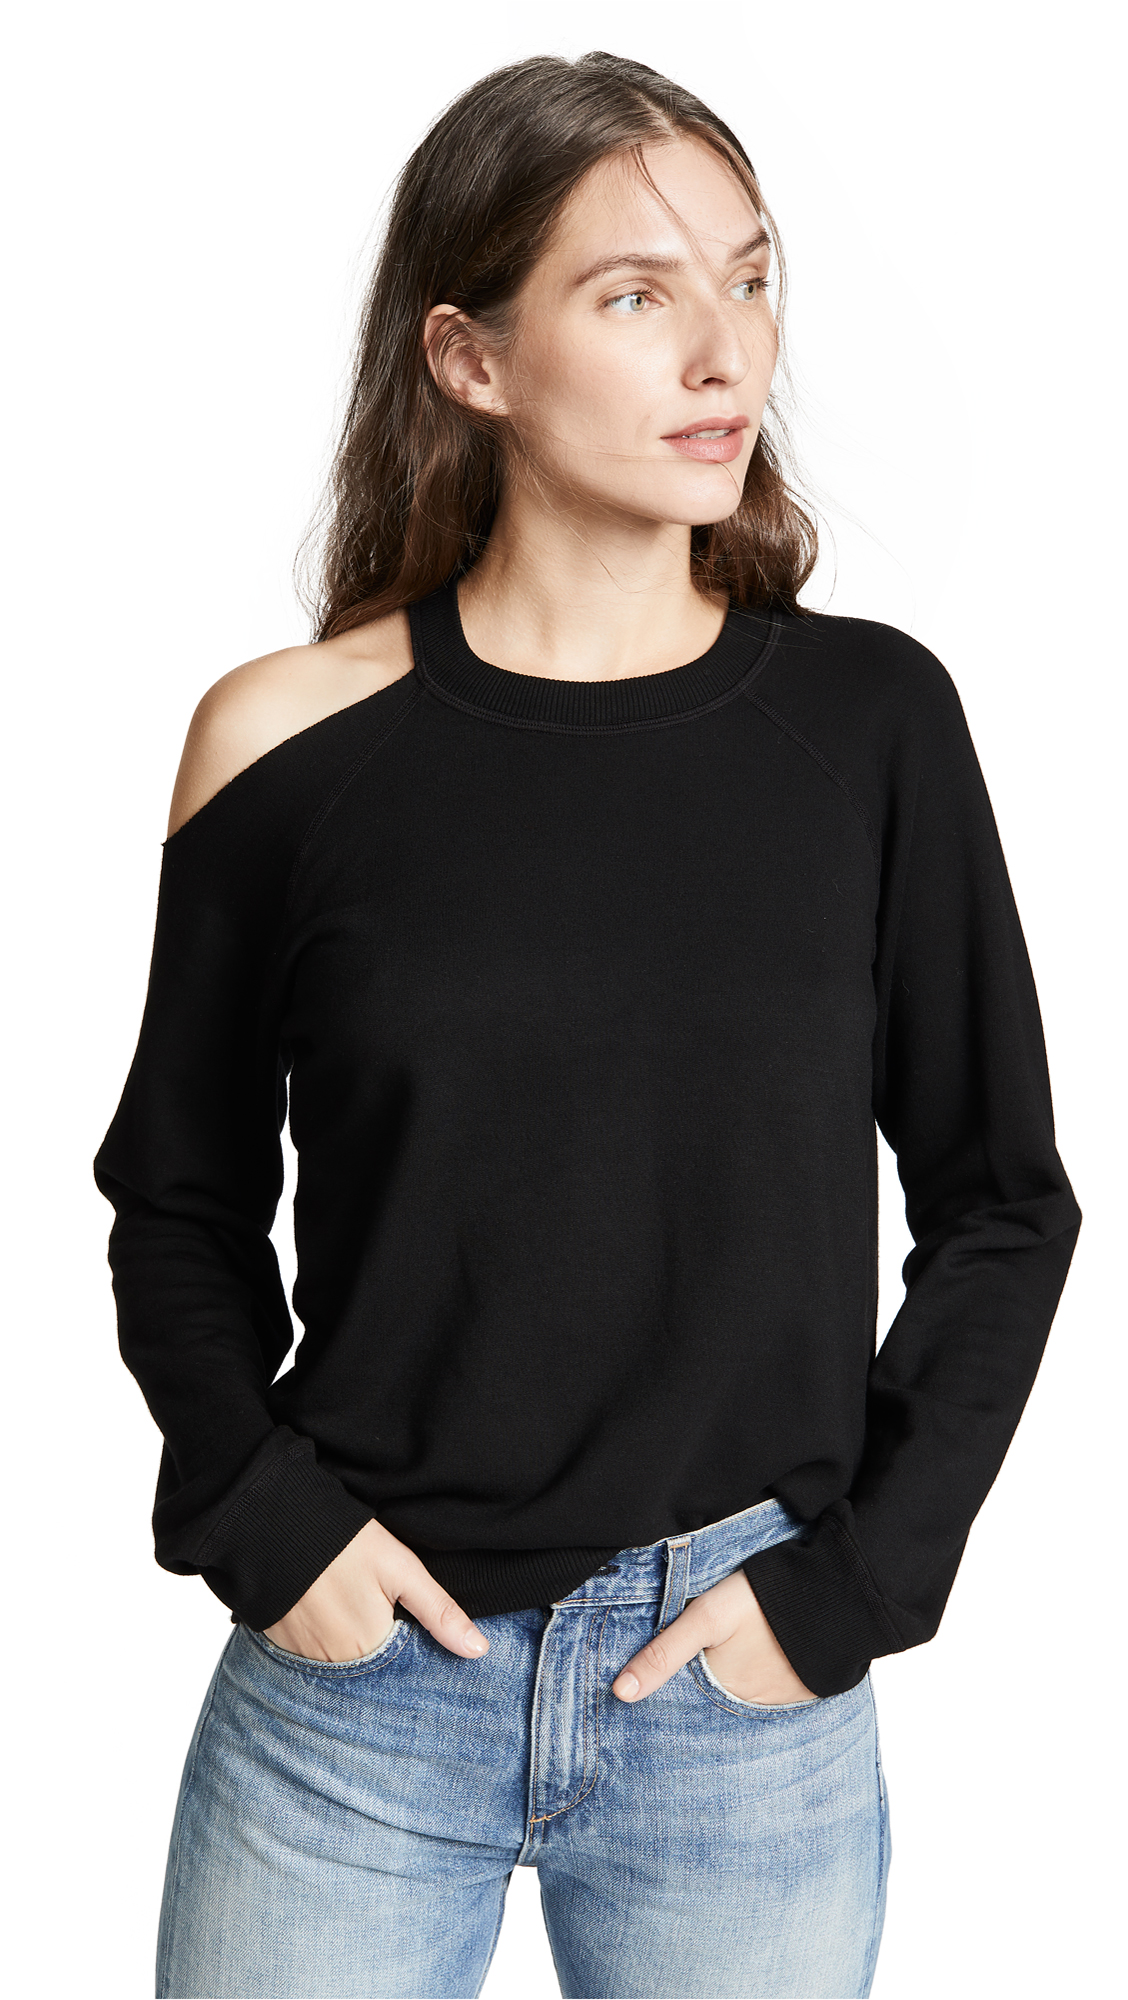 Fabric: Fleece Ribbed trim Shoulder cutout Pullover sweatshirt style Waist-length style Crew neck Long sleeves Shell: 67% rayon/30% cotton/3% spandex Trim: 97% rayon/3% spandex Wash cold Made in the USA Measurements Measurements from size S Length: 22.5in / 57cm, from shoulder